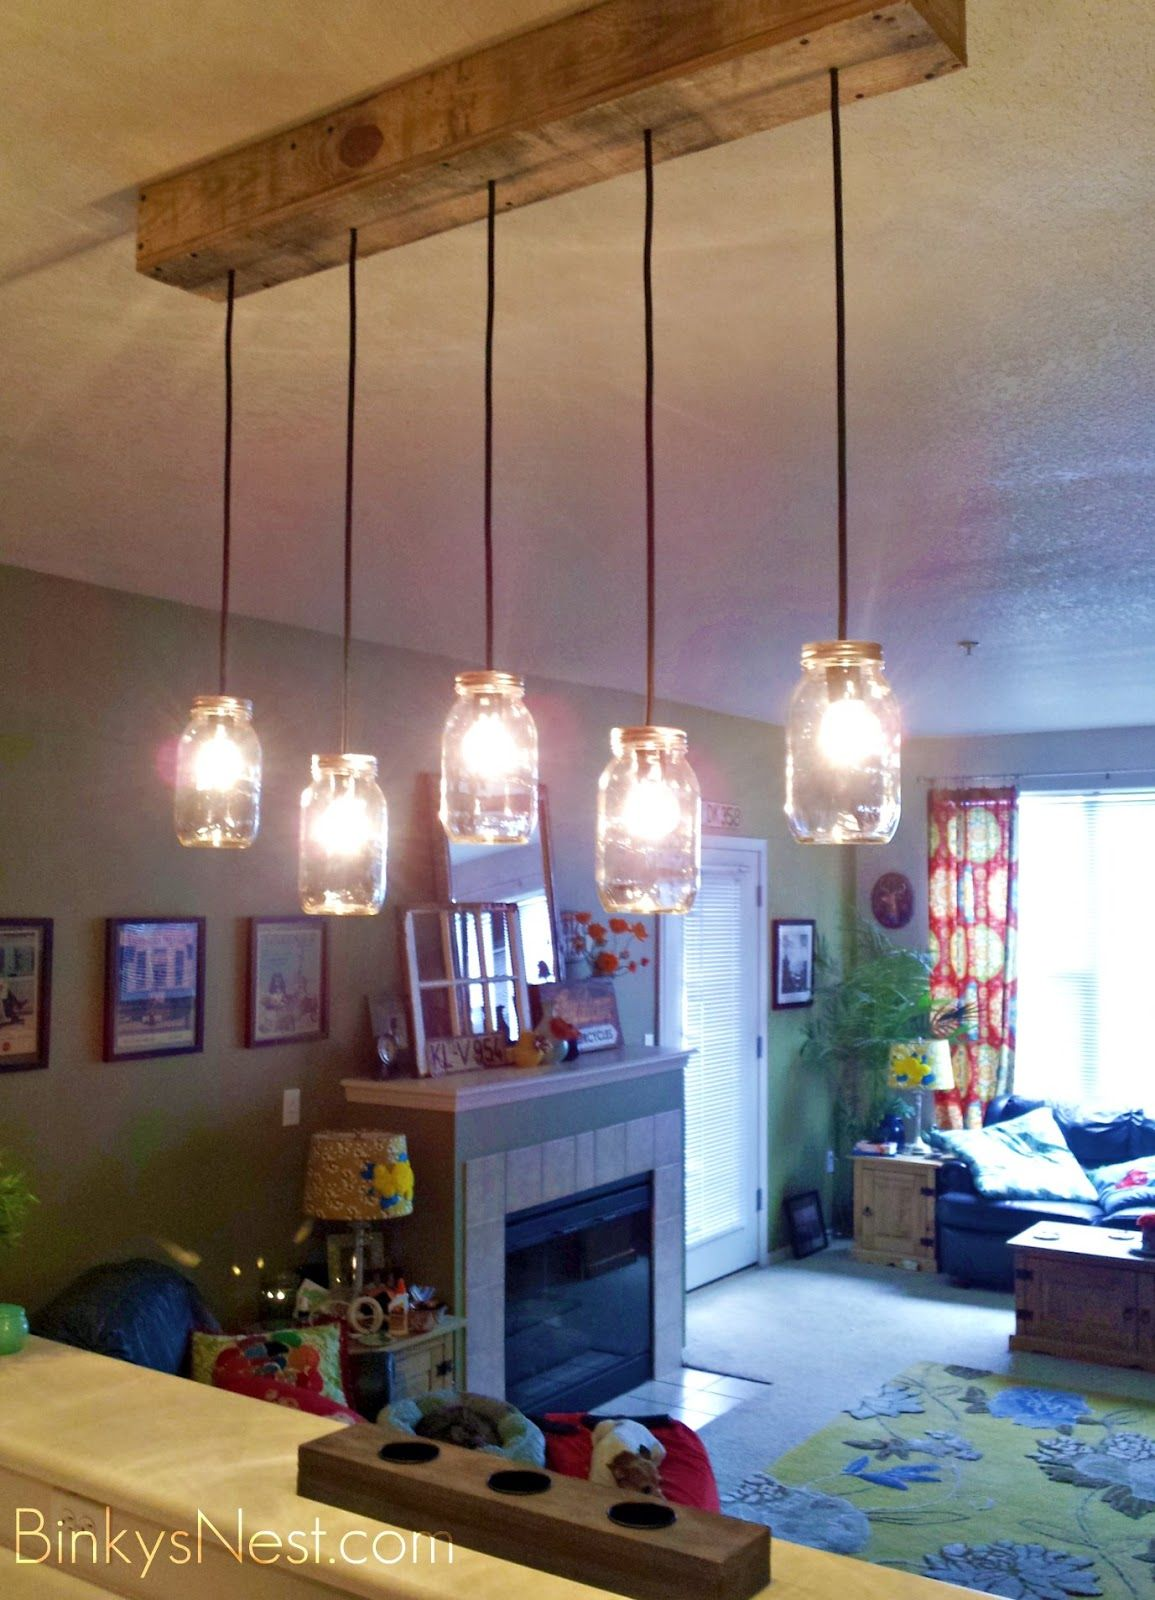 Mason Jar & Rustic Pallet Light Fixture DIY on BinkysNest.com ...